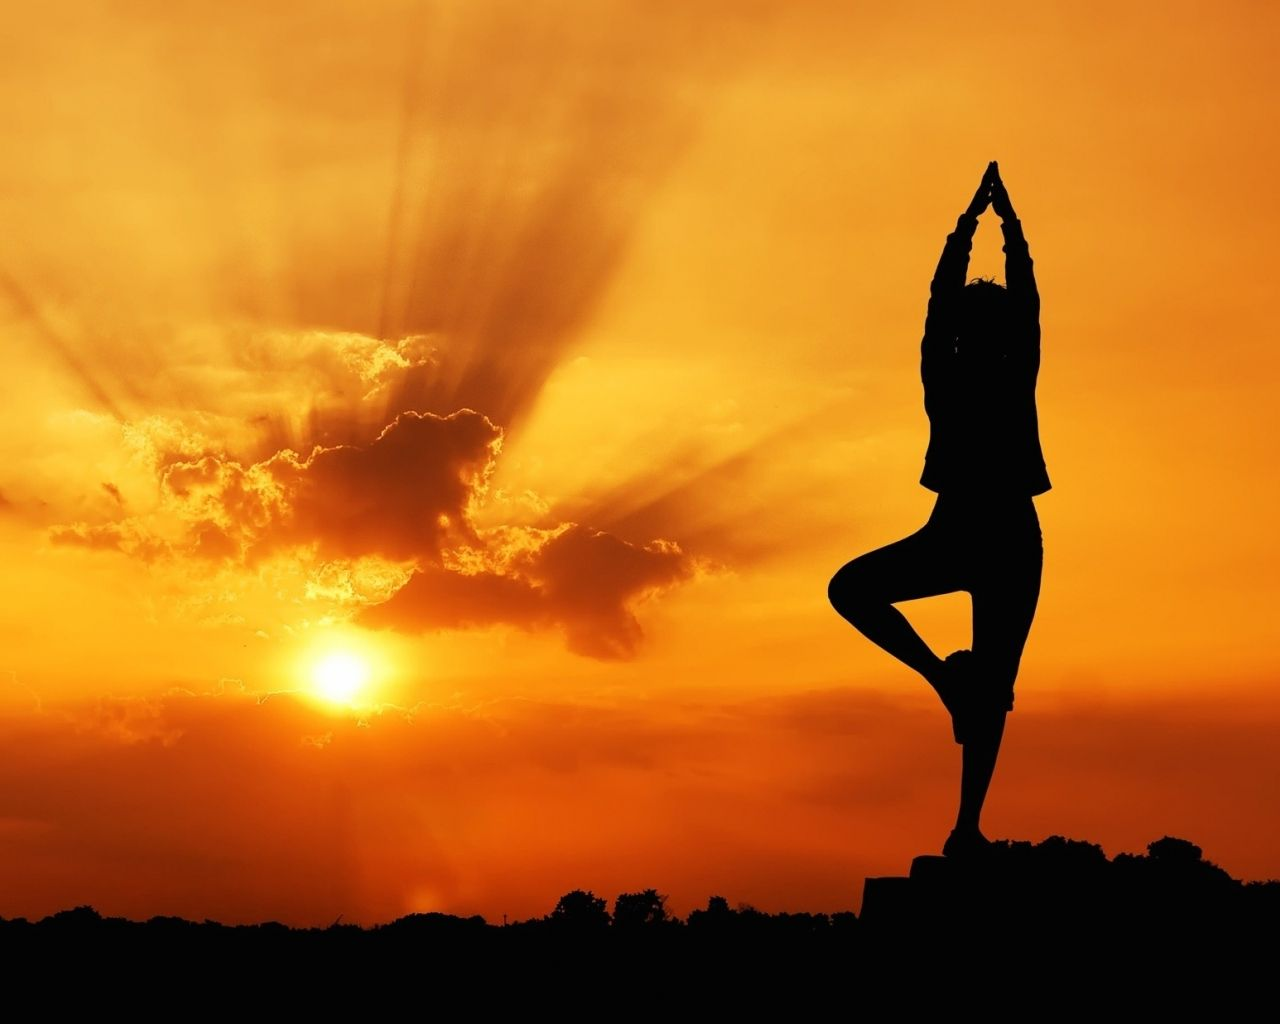 Hd Yoga Wallpapers Top Free Hd Yoga Backgrounds Wallpaperaccess